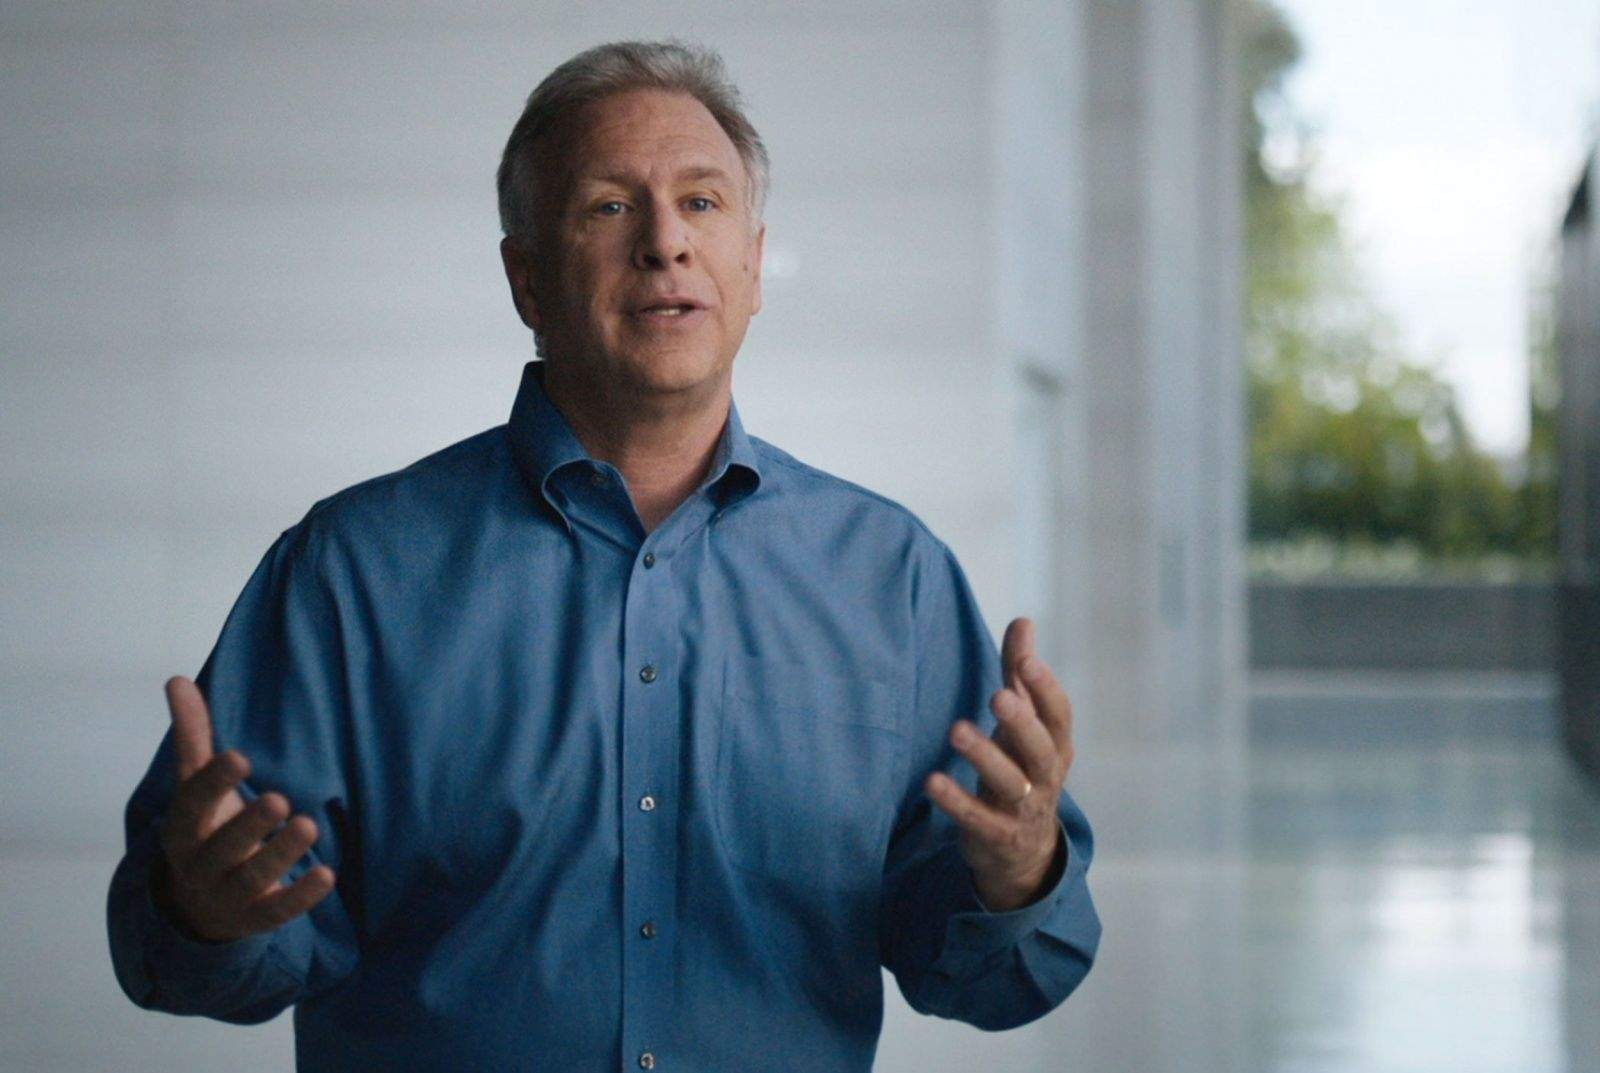 Phil Schiller answers some of our biggest questions about Apple products.